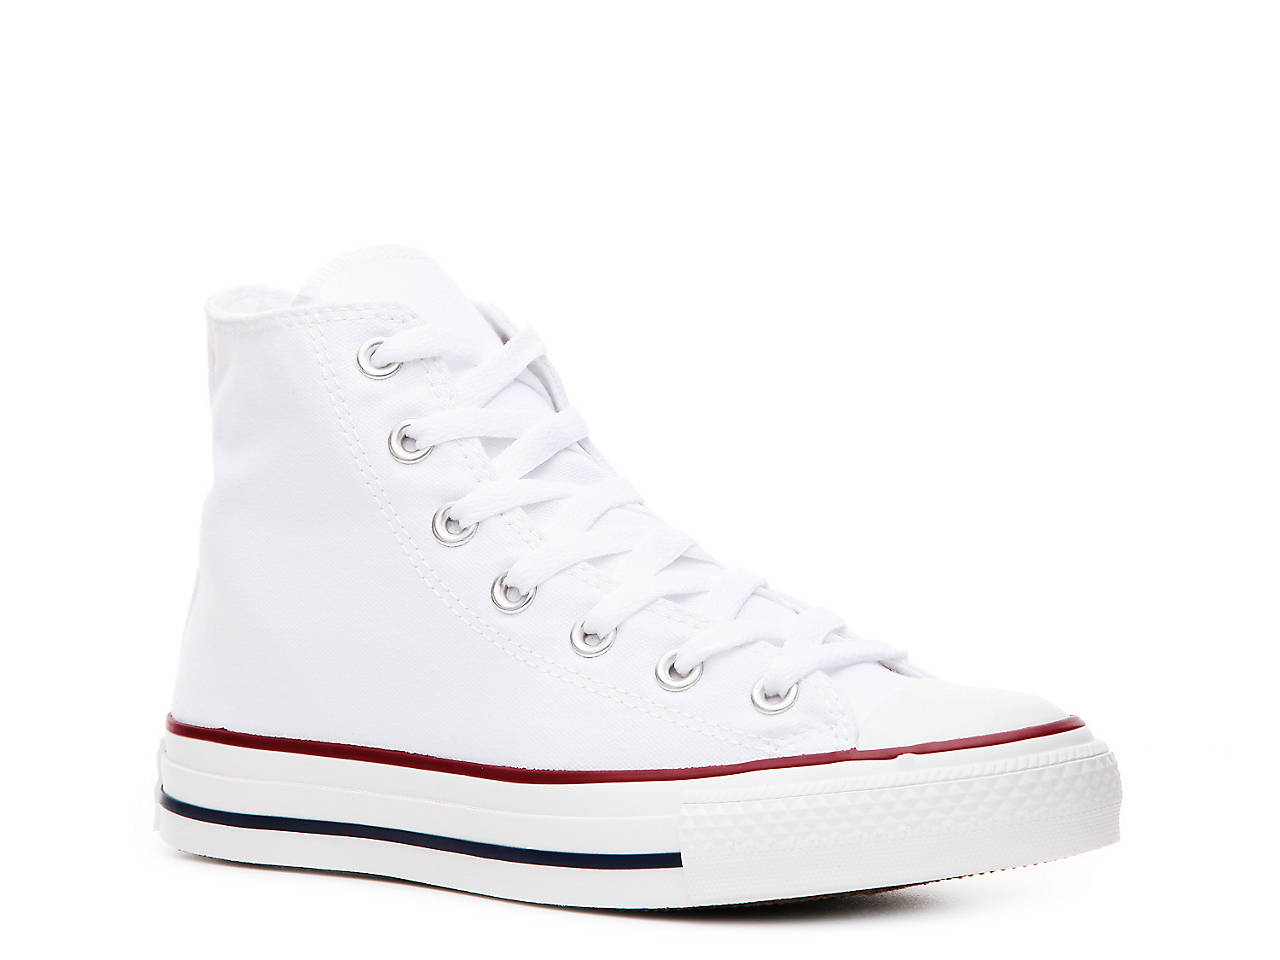 95f447a79f Chuck Taylor All Star High-Top Sneaker - Women's